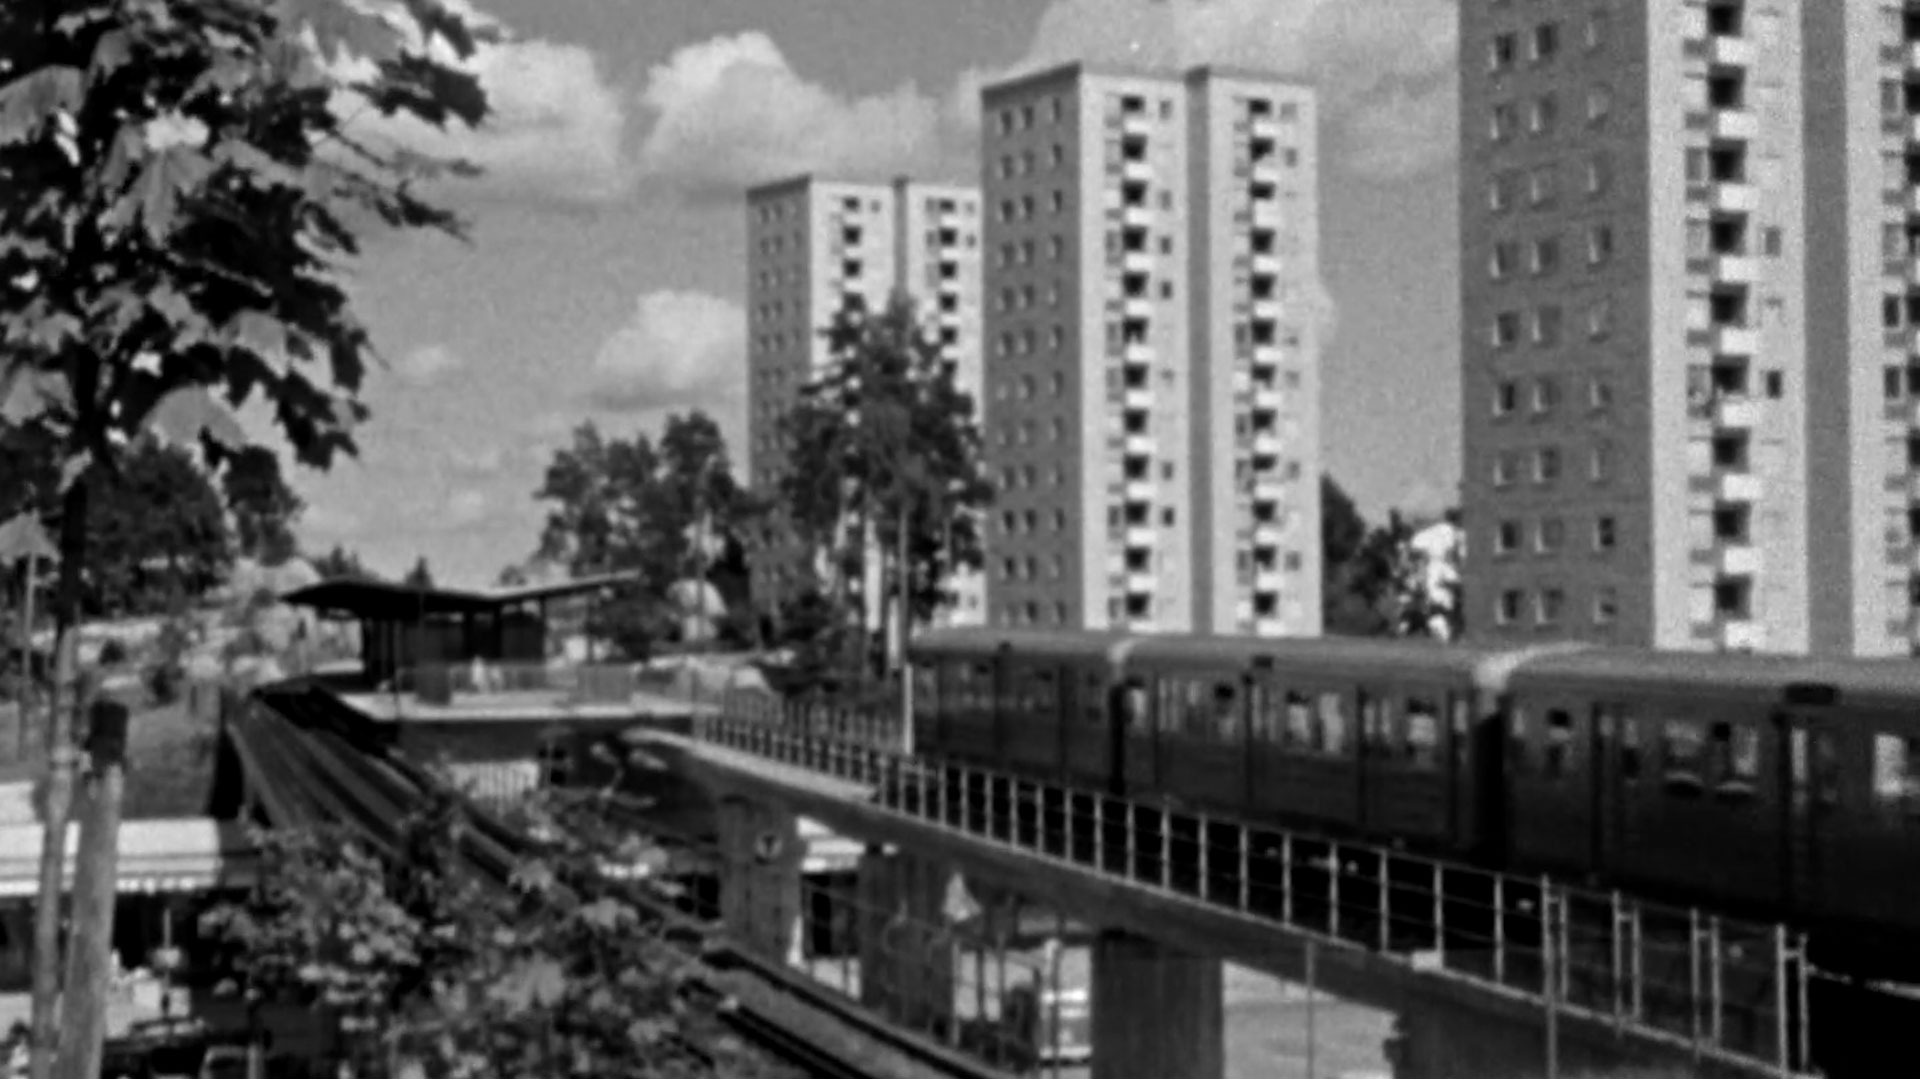 European city with train and buildings in black and white